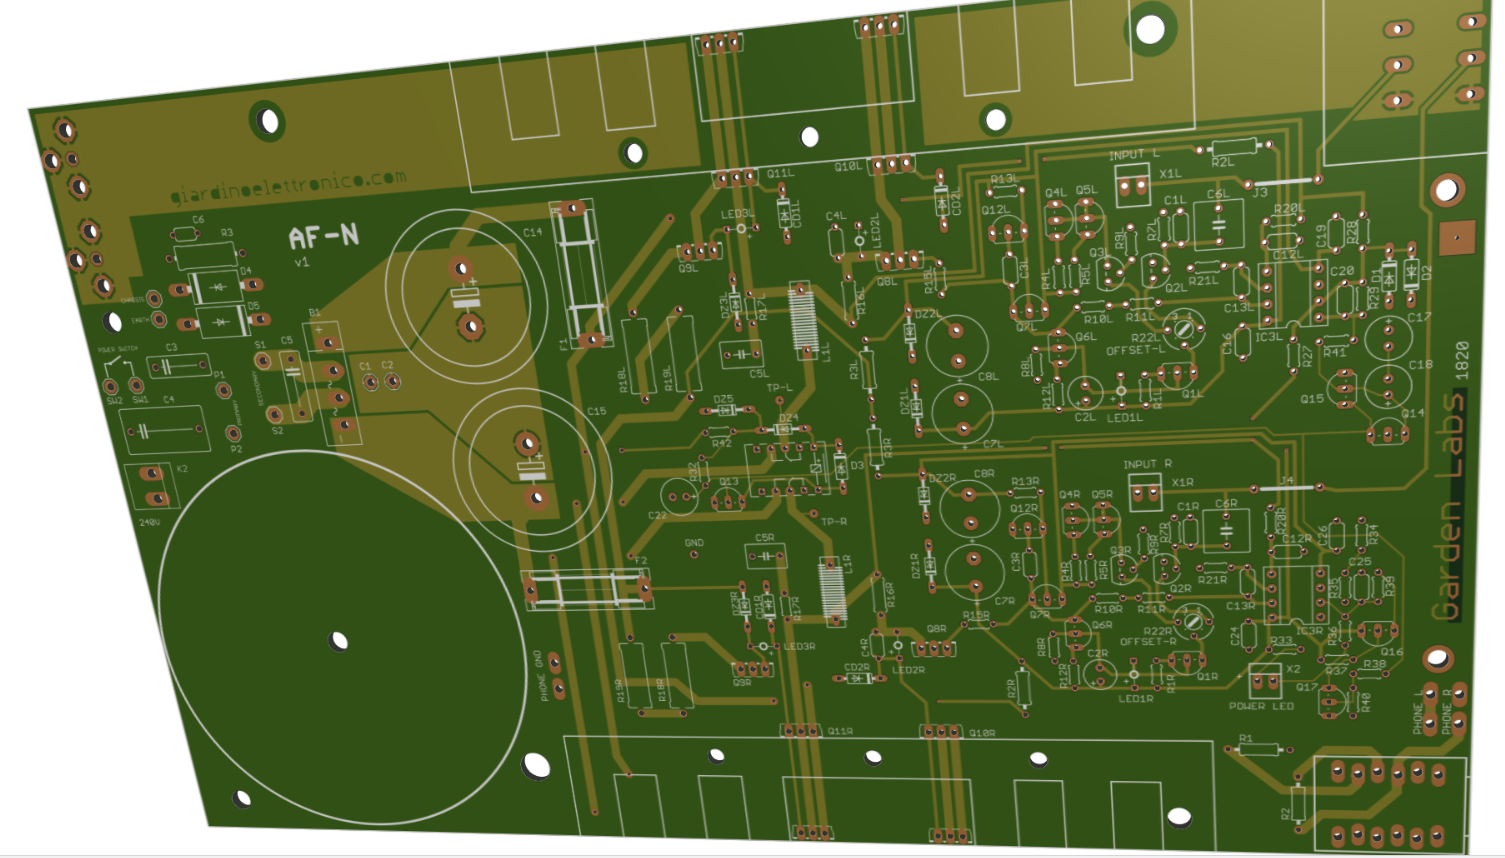 AF-N: group buy PCB - Pagina 4 41577281825_950c5a0465_o_d